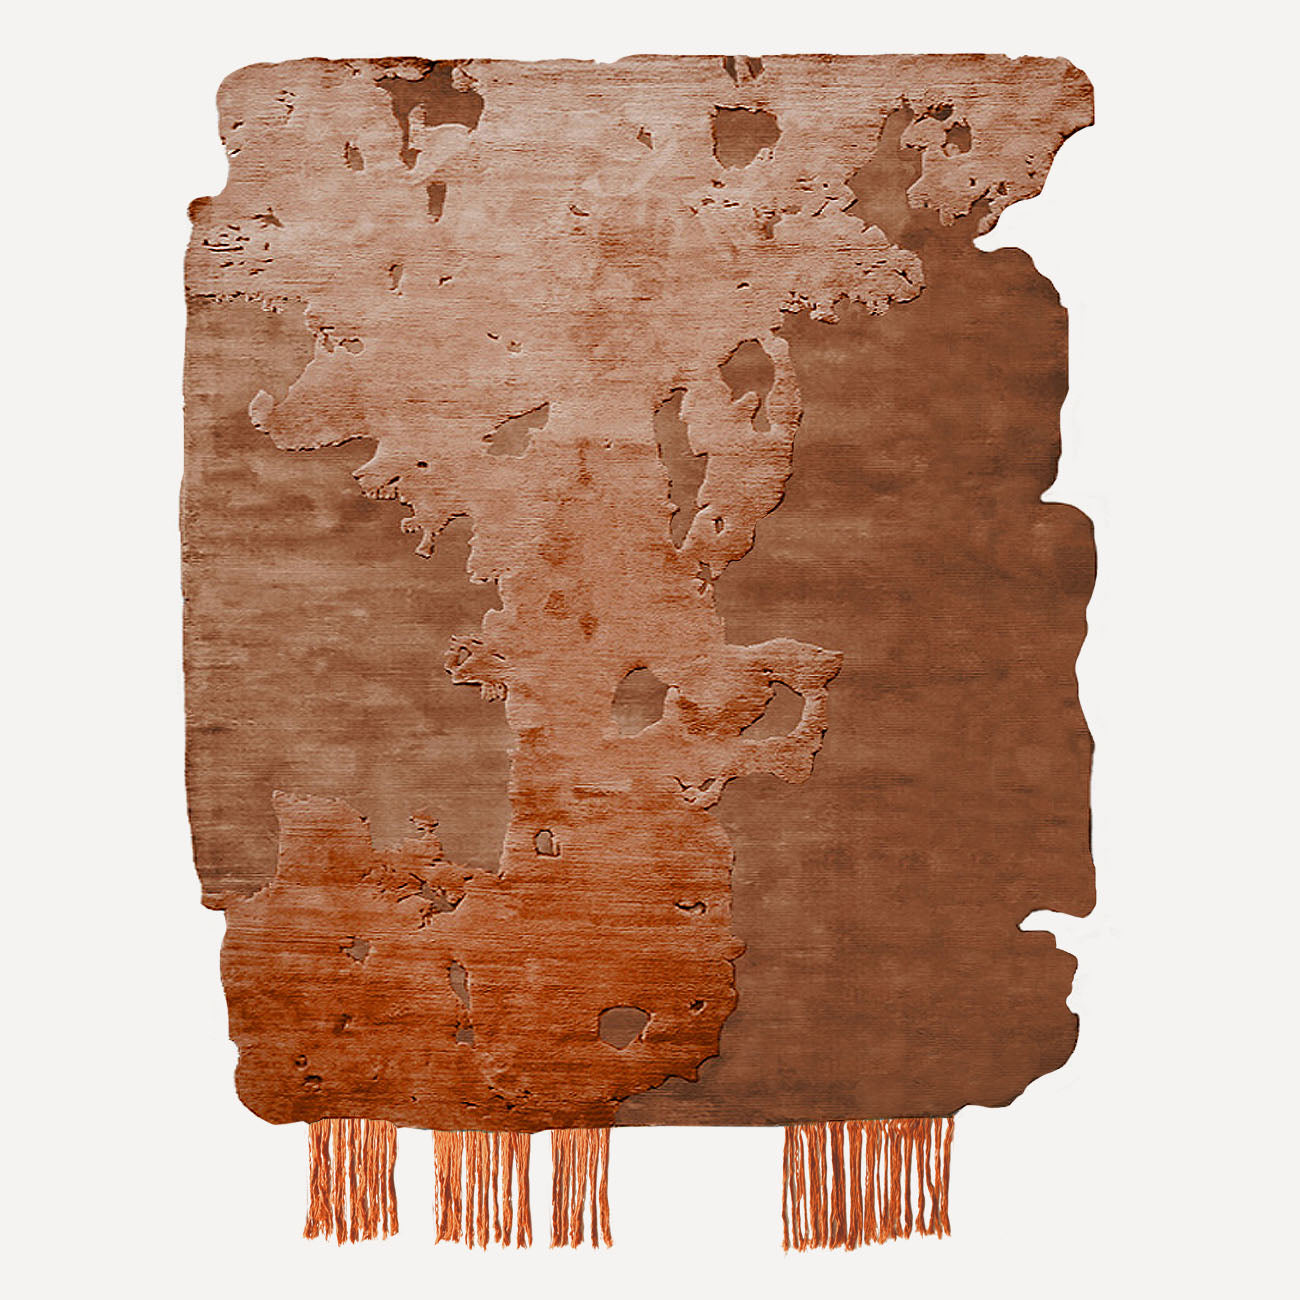 CALLE HENZEL, NOBU BURNT ORANGE, 2013